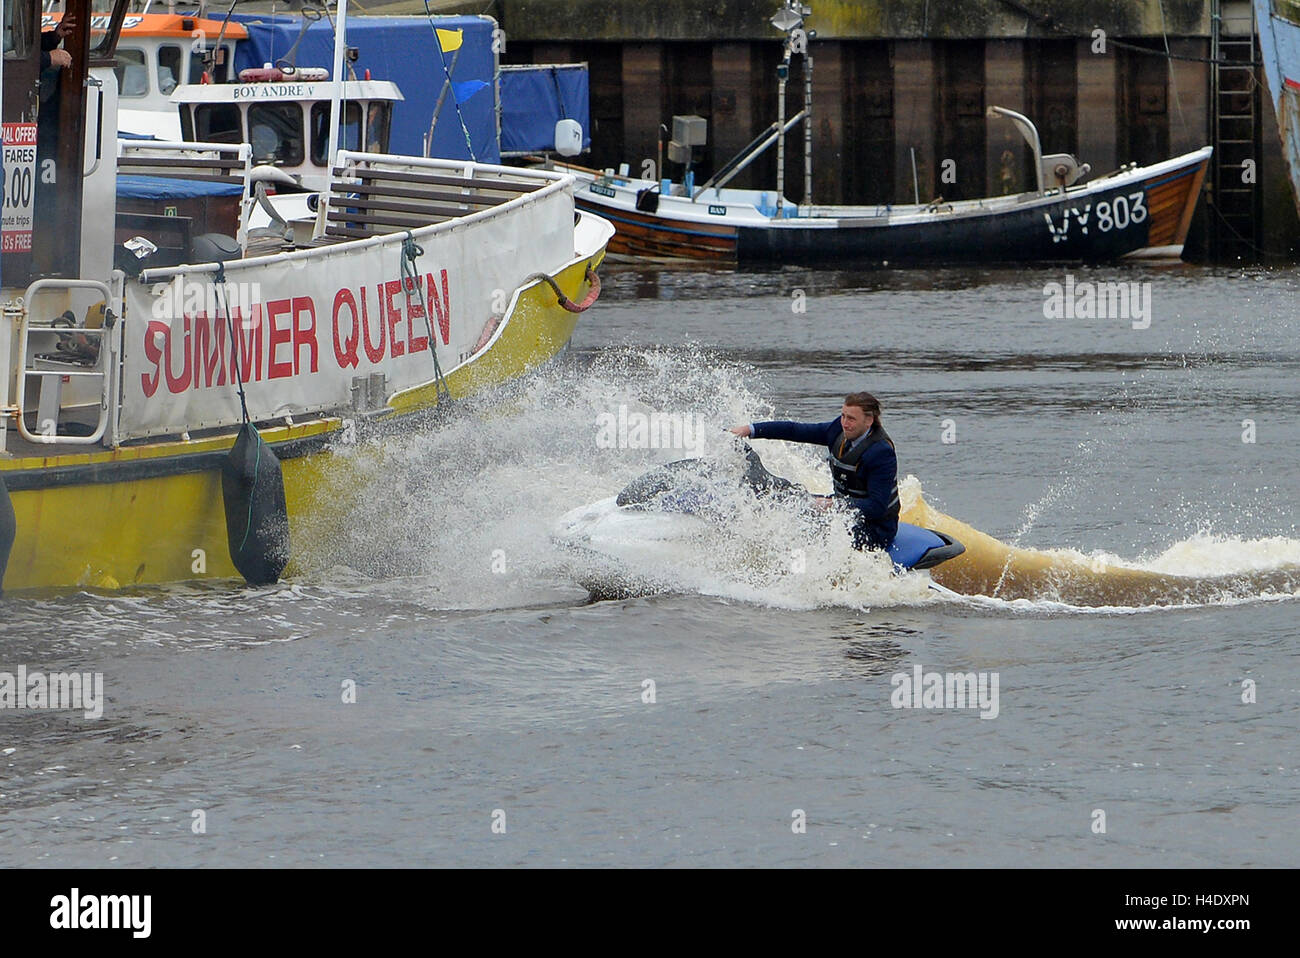 A stuntman crashes a jet ski into a boat in Whitby harbour as Jeremy Clarkson's new show The Grand Tour films - Stock Image